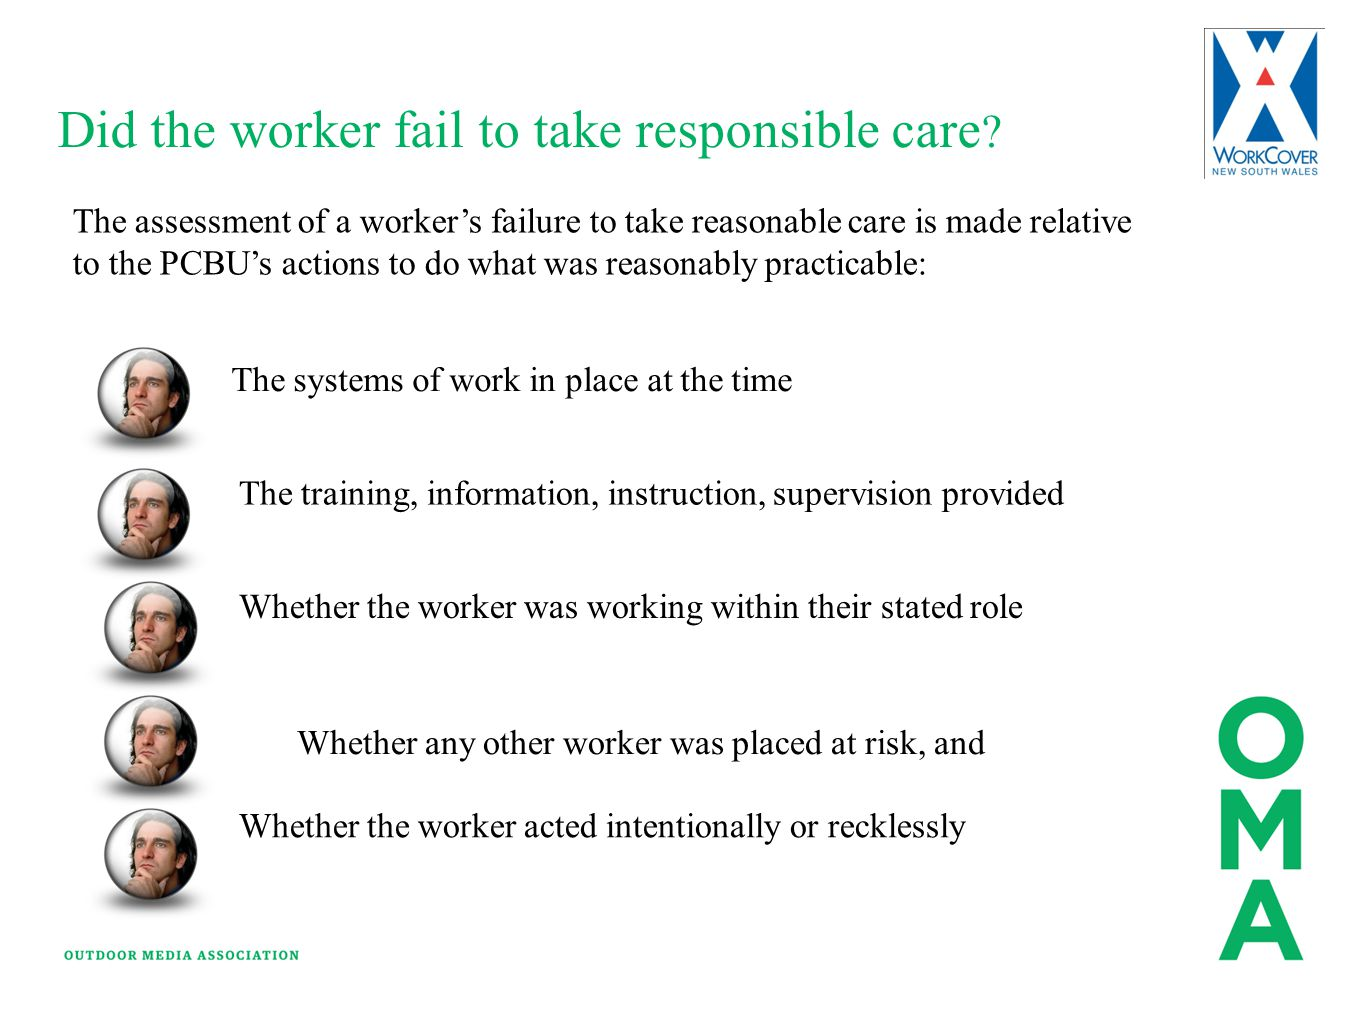 Did the worker fail to take responsible care ? The assessment of a worker's failure to take reasonable care is made relative to the PCBU's actions to